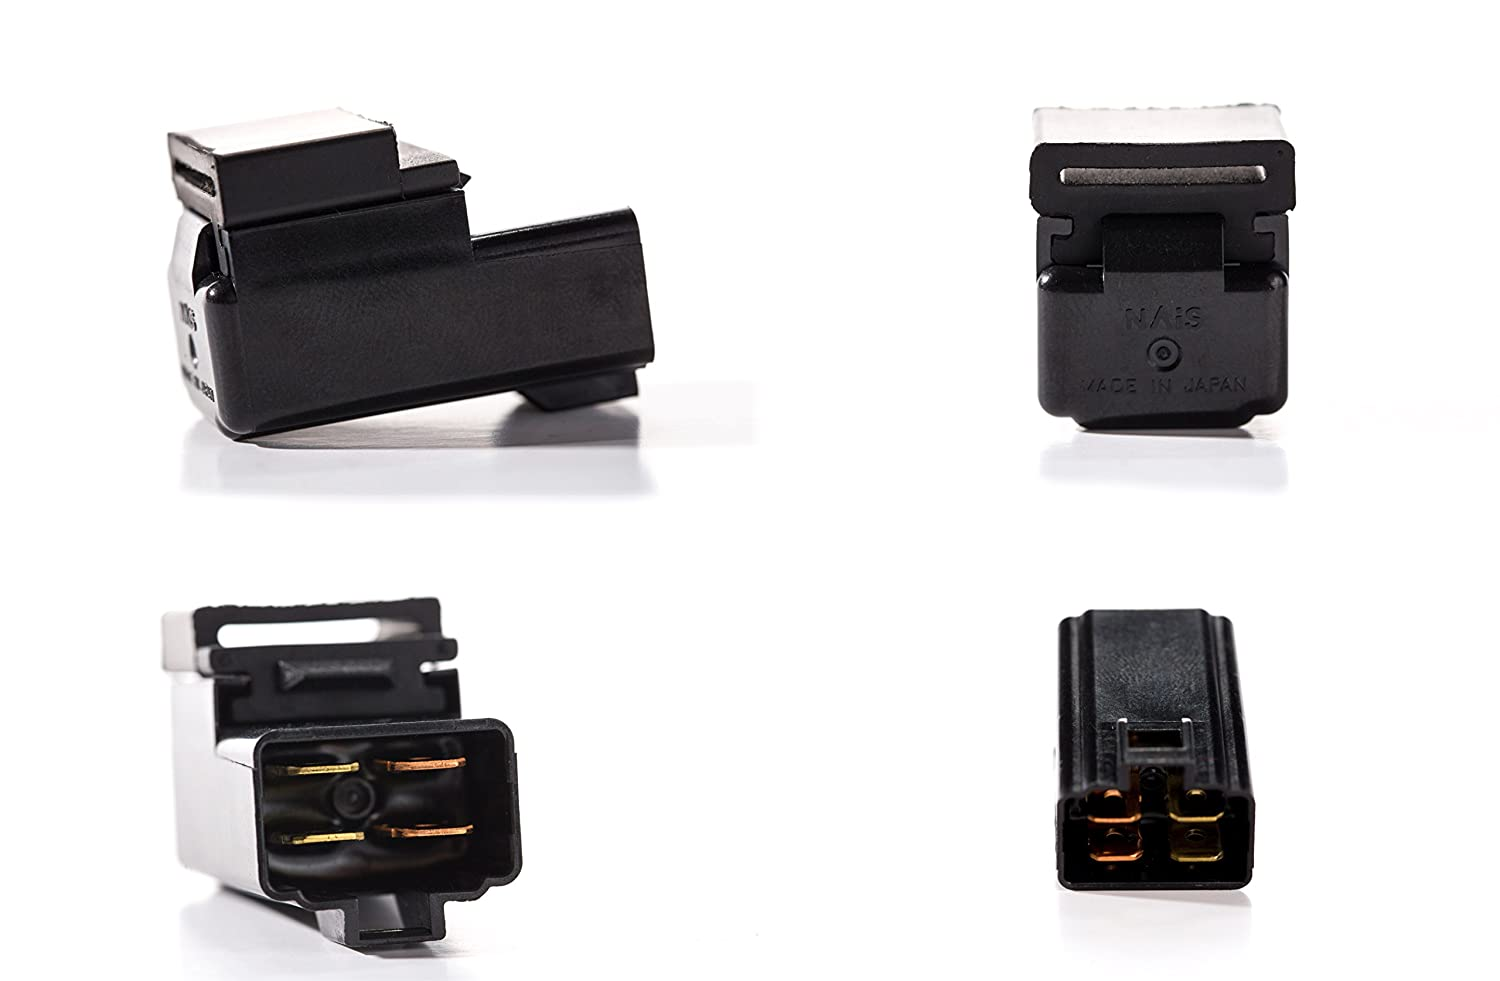 Direct Replacement Relay for Yamaha Part 29U-81950-93-00 - Made in Japan Sealed Four Terminal 501 Parts